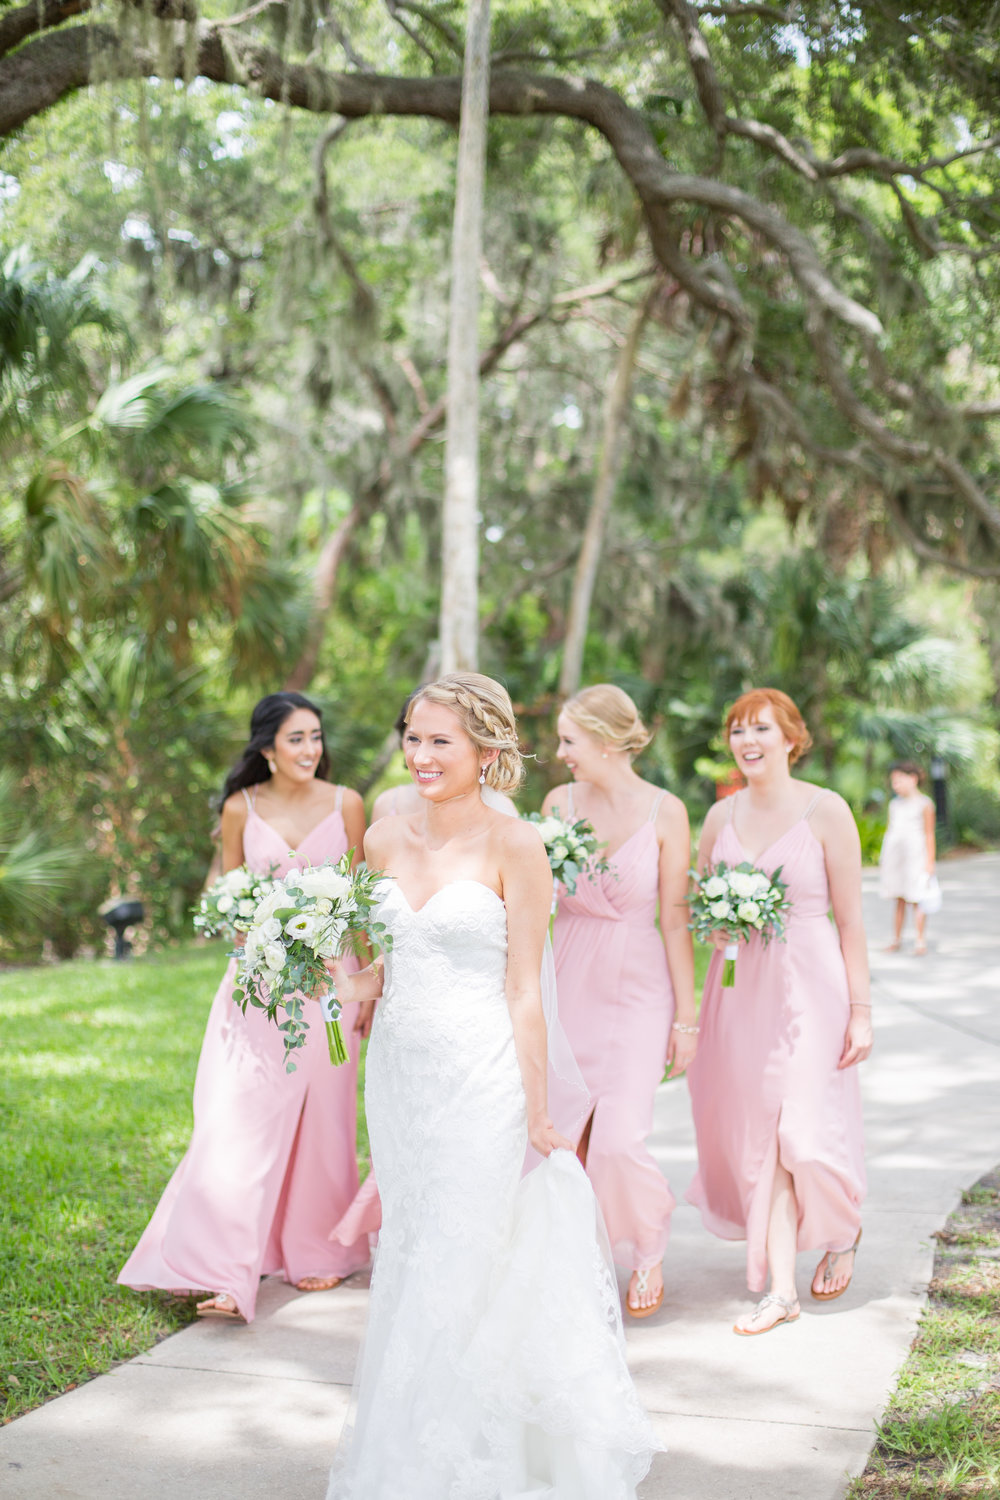 Powel Crosley Estate | Wedding | Pink and Gold Wedding | Bridesmaids Dresses | Wedding Bouquet | Sarasota Weddings | Spring Wedding | Jess Anne Photography